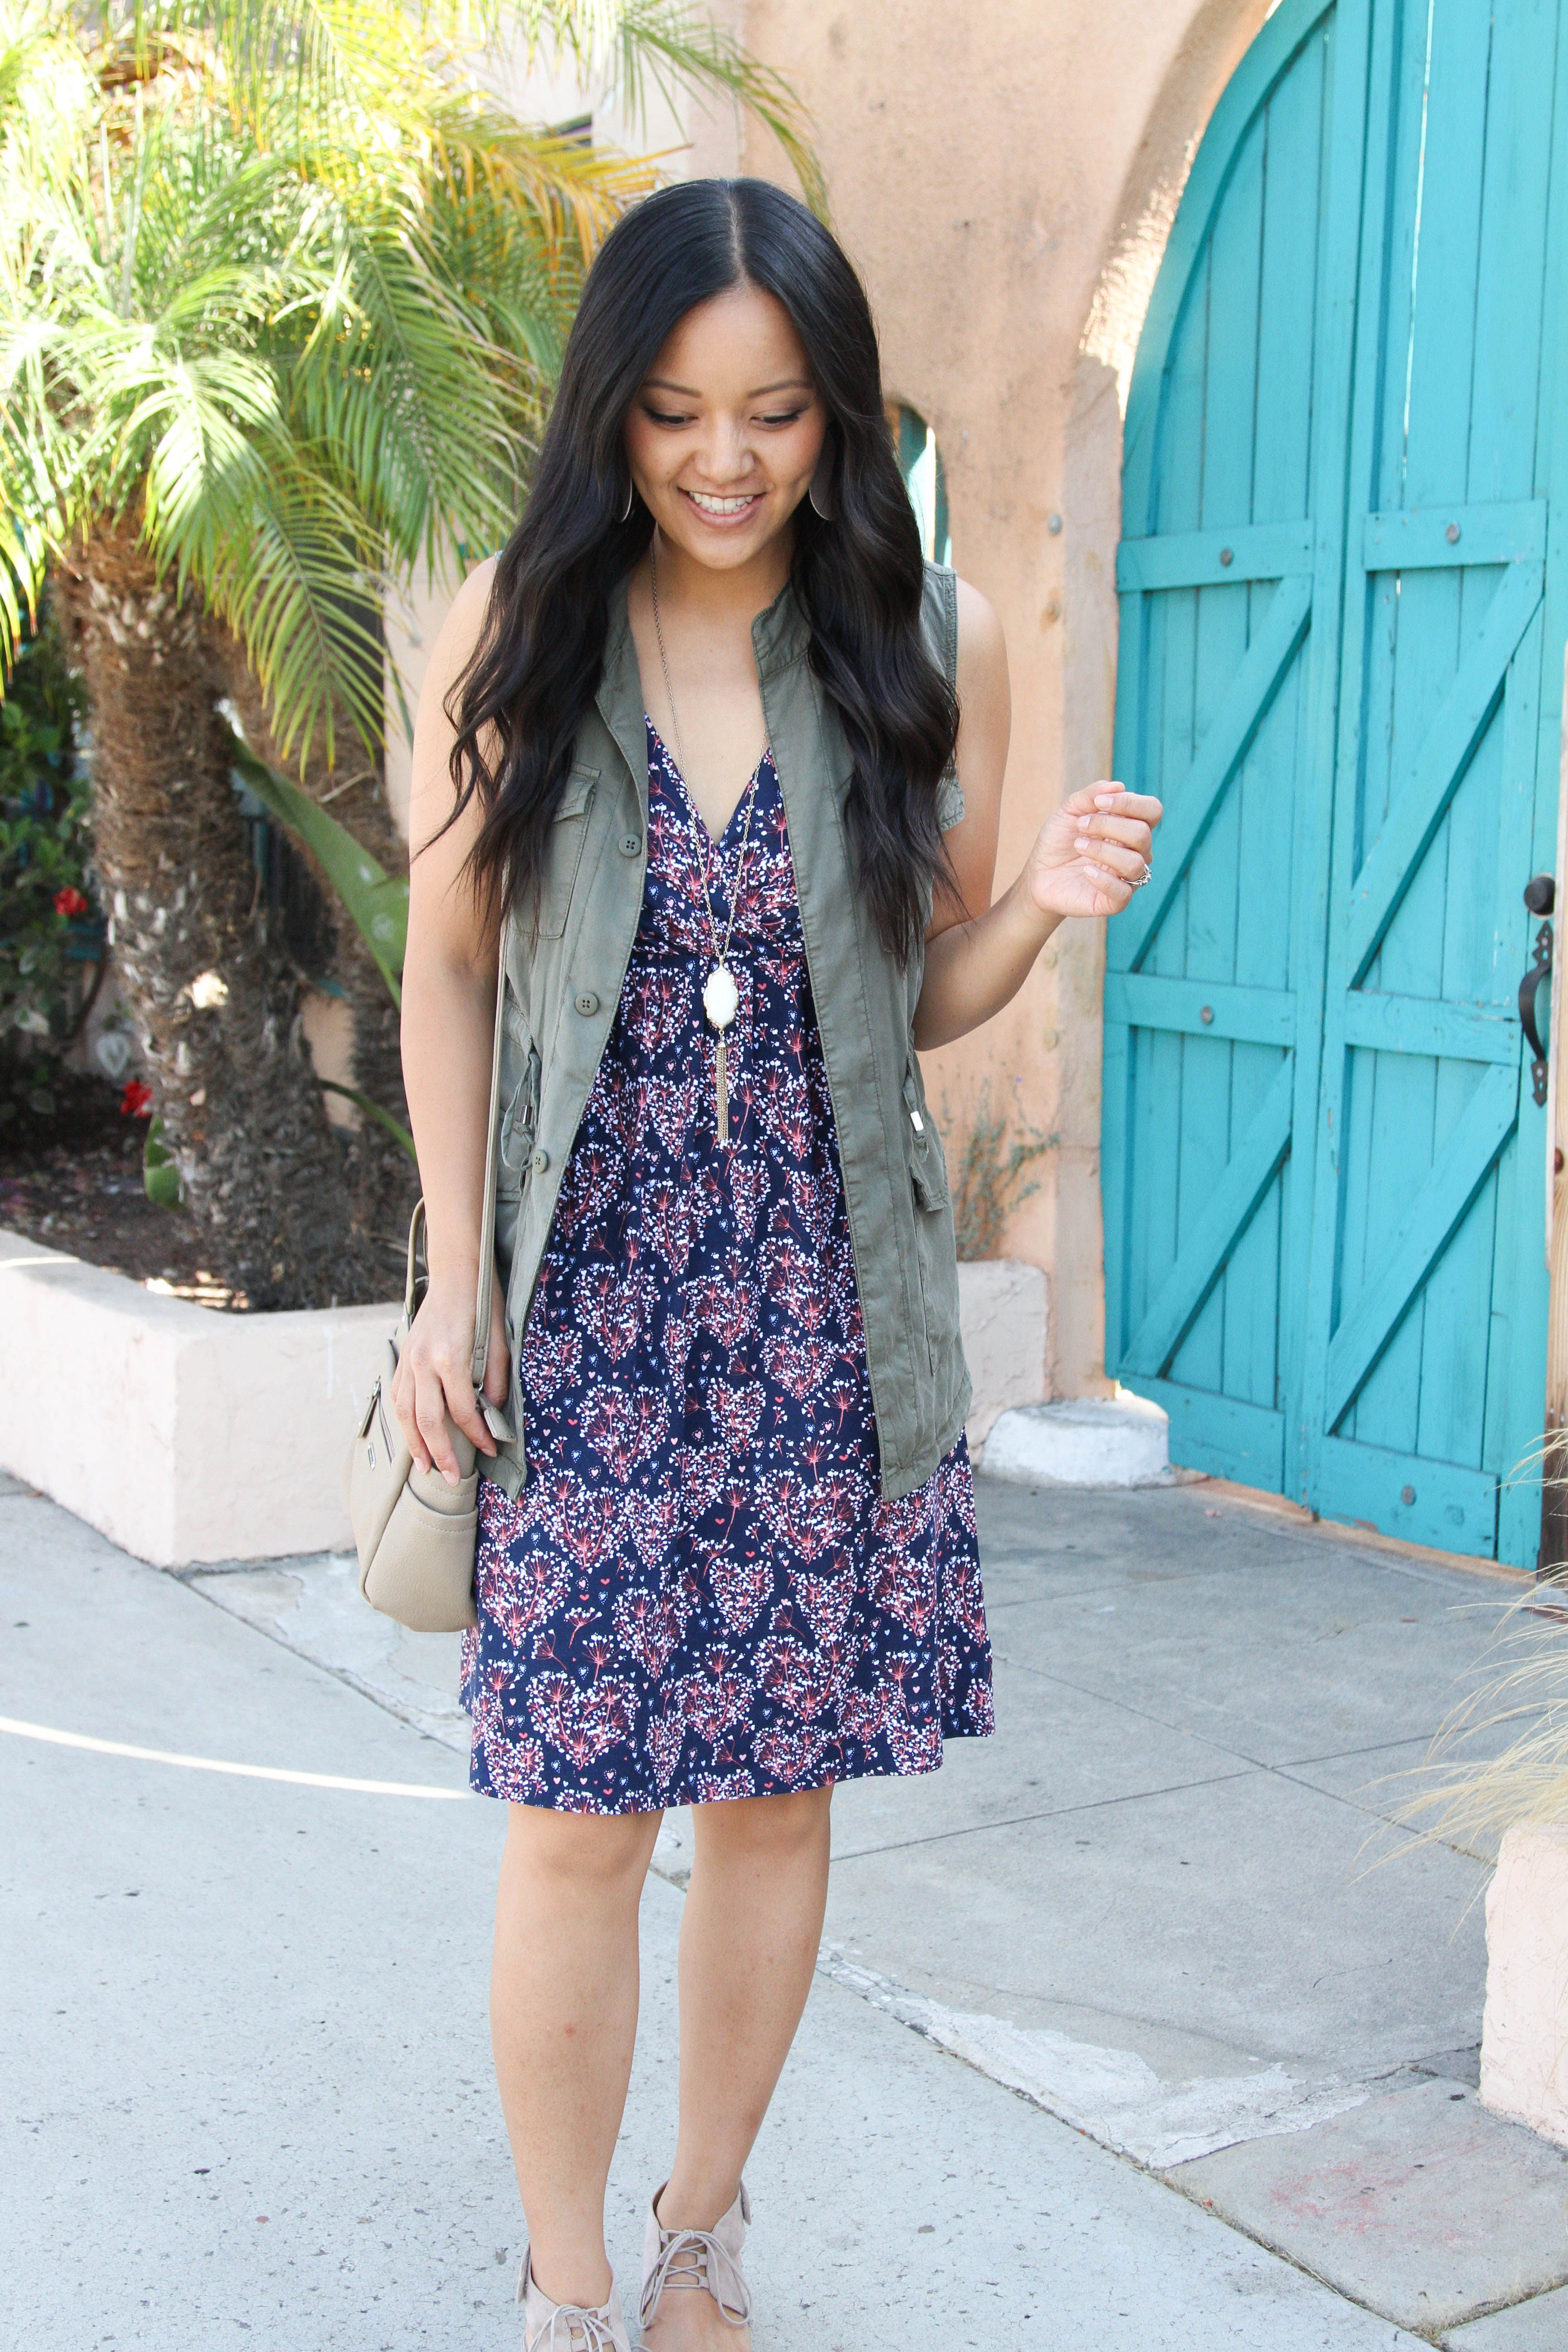 e187ca2f29a3 Two Fall Outfits with a Dress - How to Style it Now and Later | PMT ...